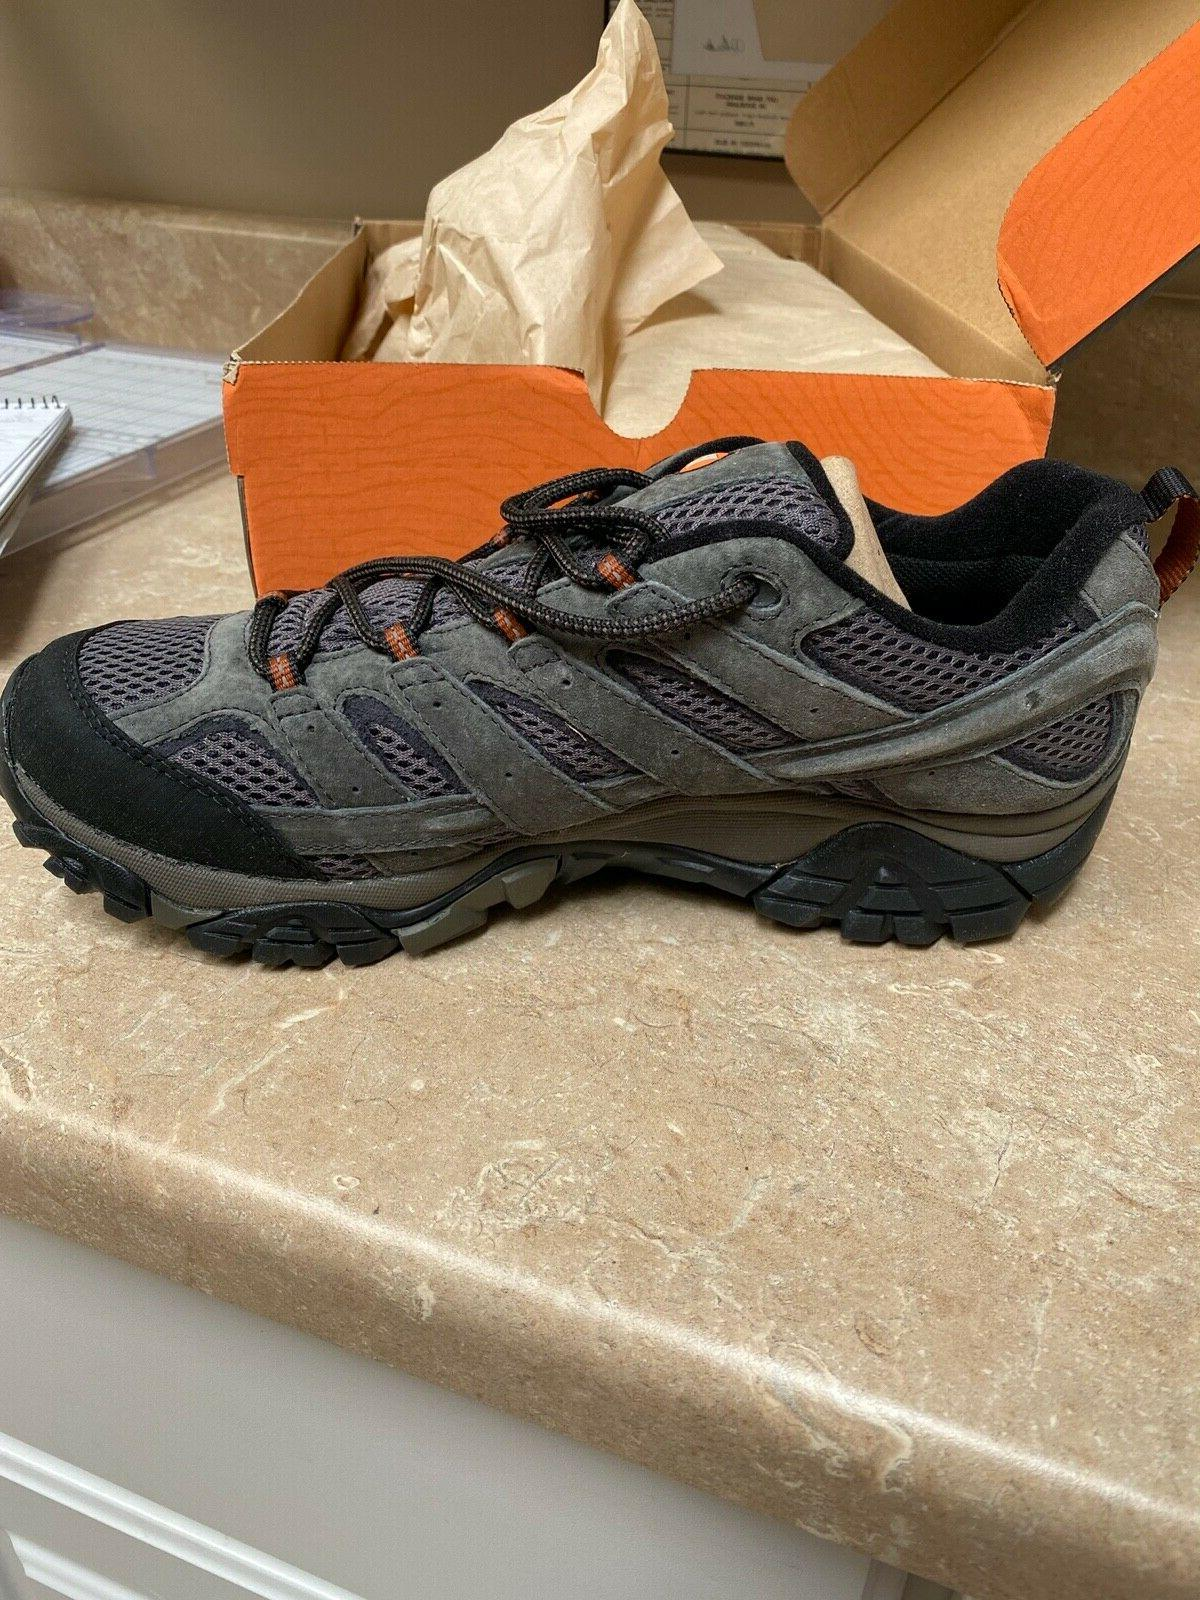 NEW Merrell 2 Shoes